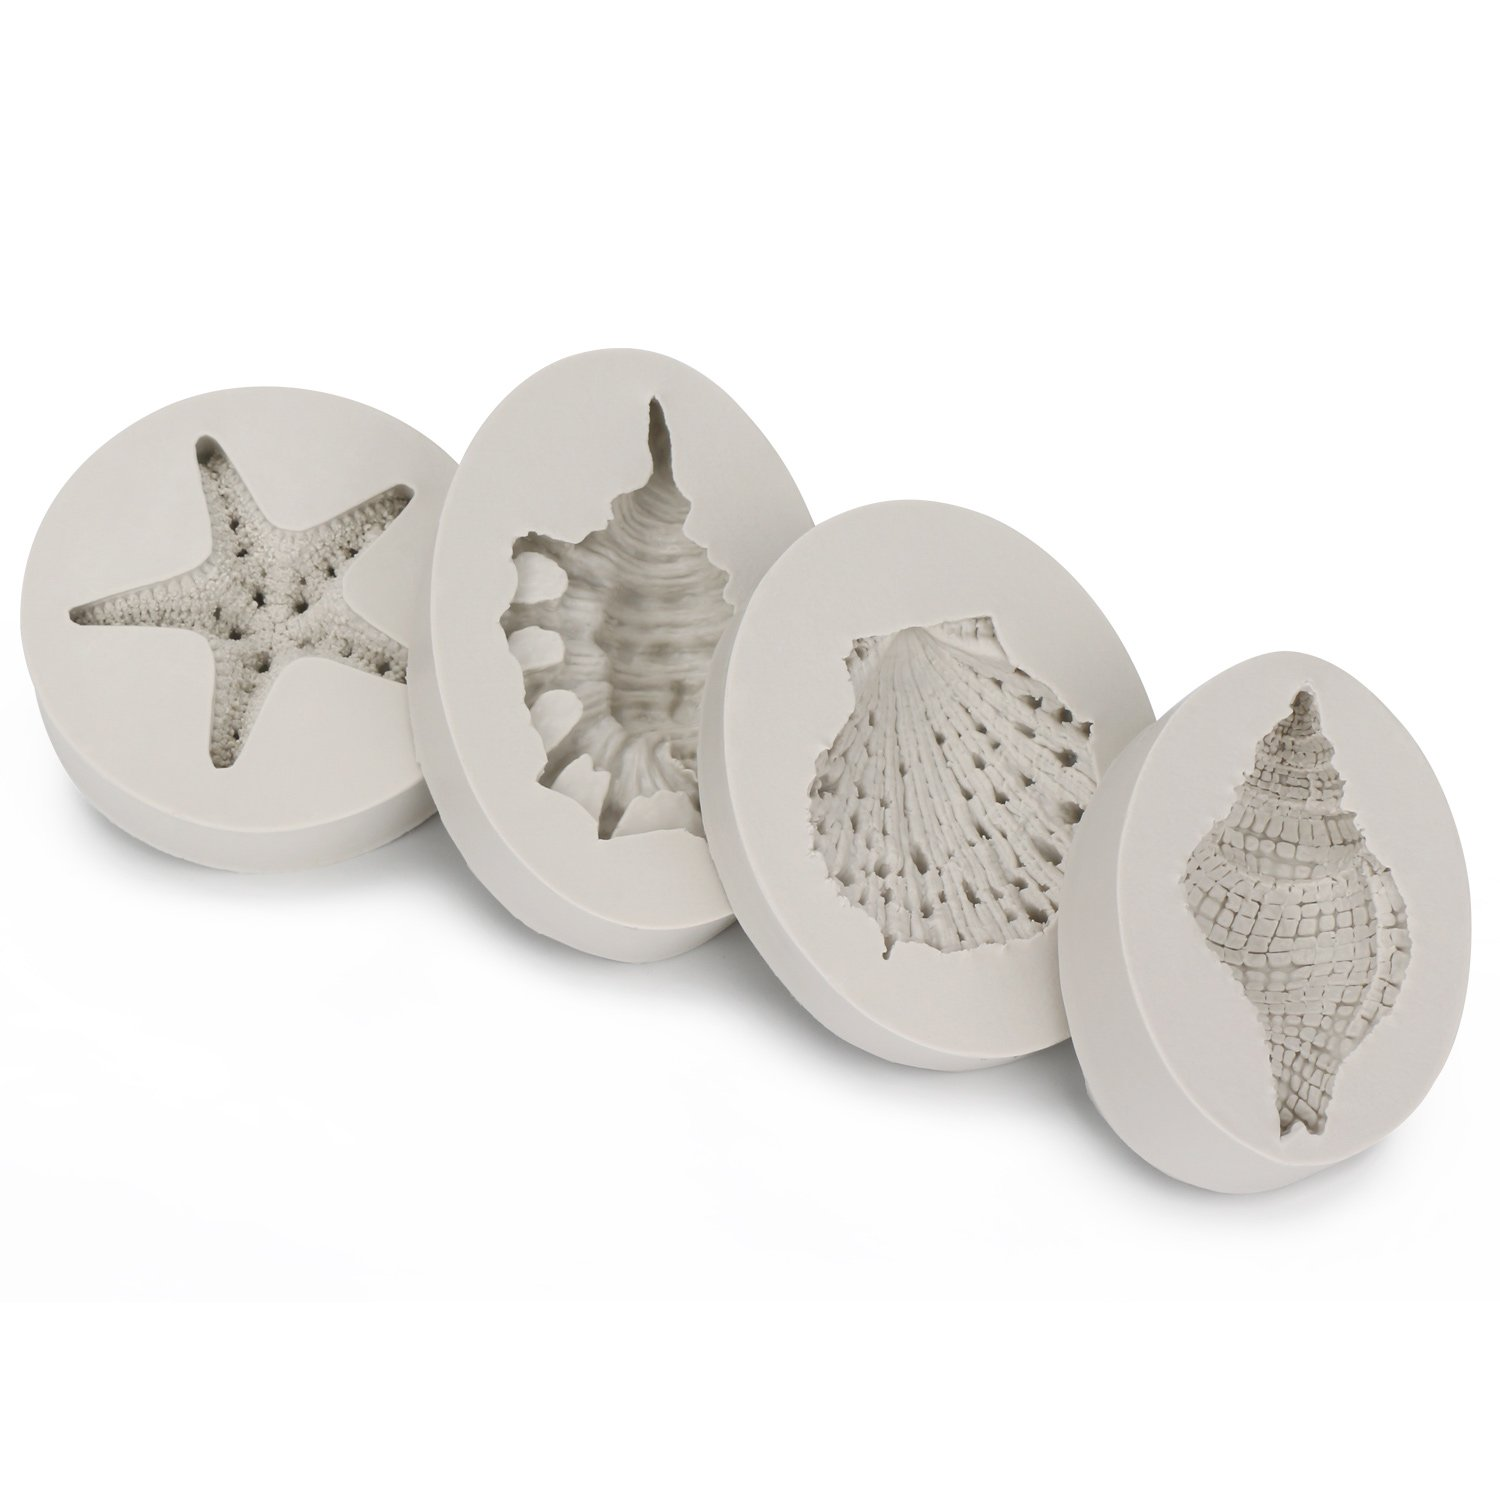 Sea Life Mold, Beasea 4pcs Cake Mould 3D Starfish Seashells Conch Silicone Mold Fondant Cake Decorating Tools Chocolate Candy Molds Kitchen Baking